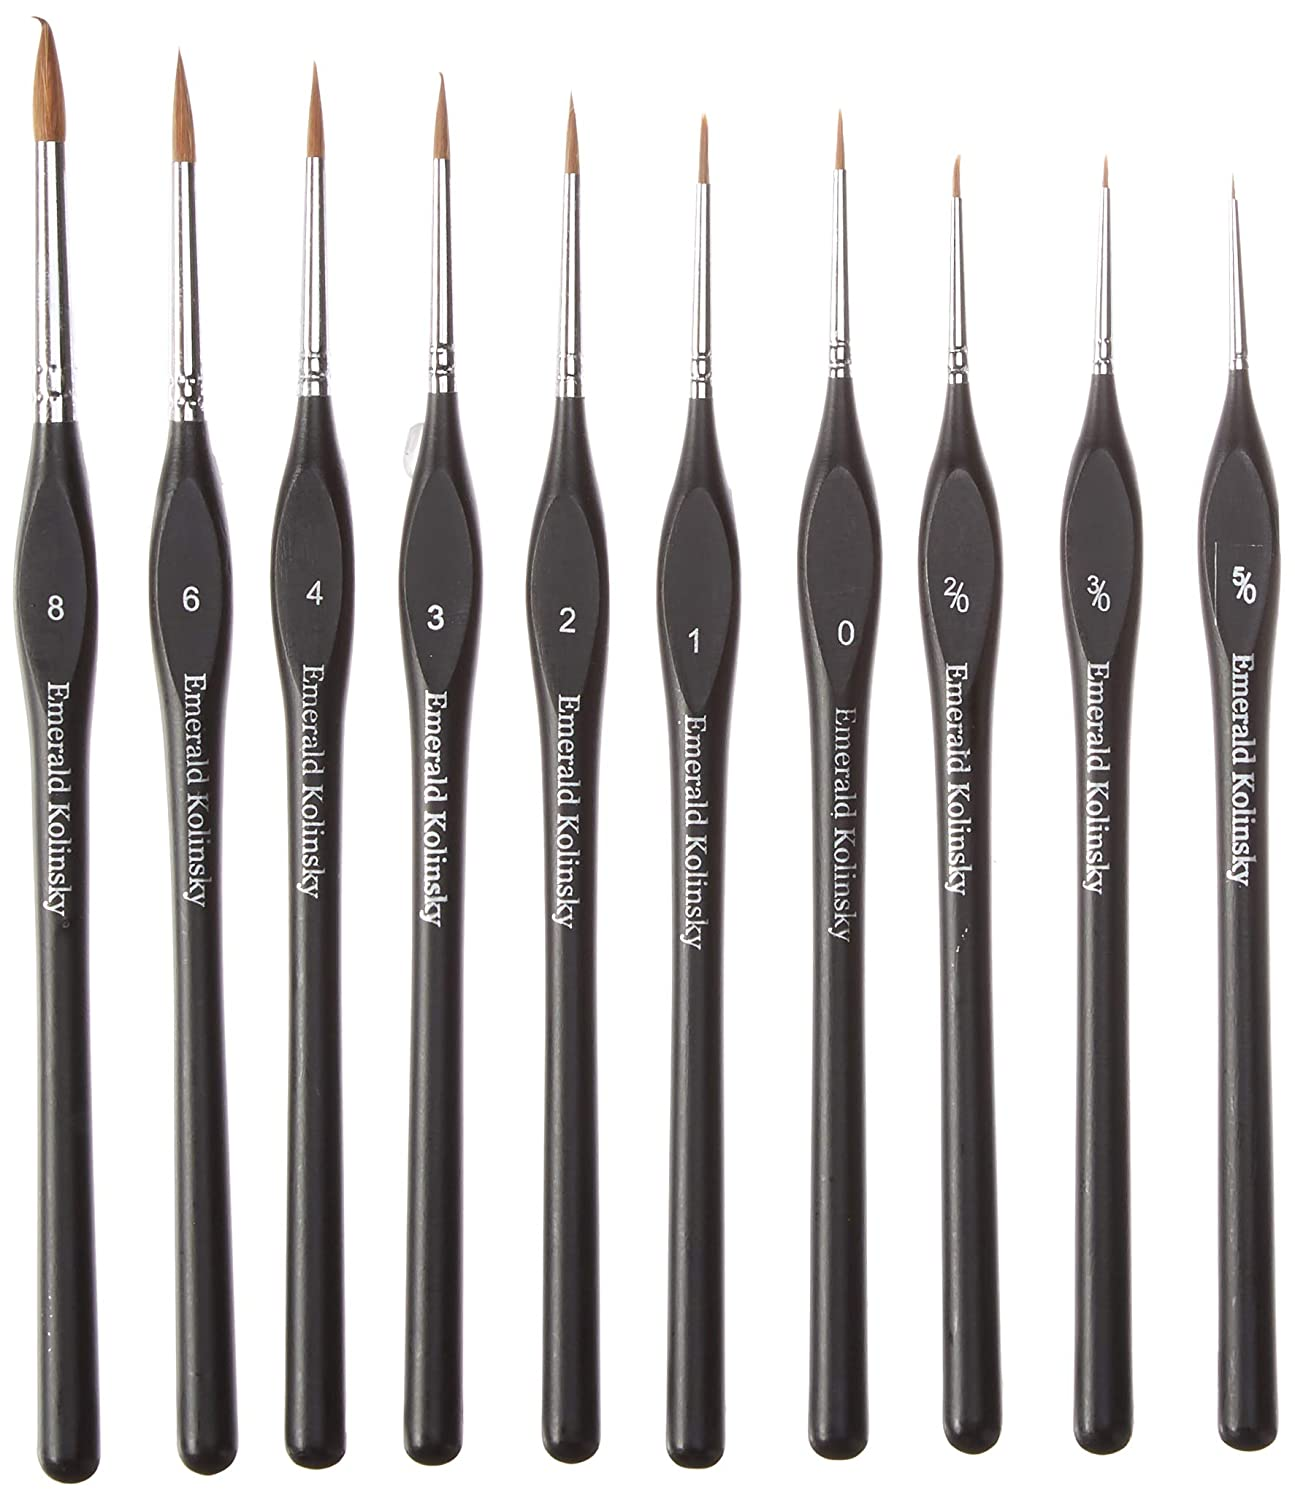 Best Professional Siberian Kolinsky Sable Detail Paint Brush, Value Set of 10, High Quality Miniature Brushes Will Keep a Fine Point and Spring, For Watercolor, Oil, Acrylic, Nail Art & Models Emerald Art Supply